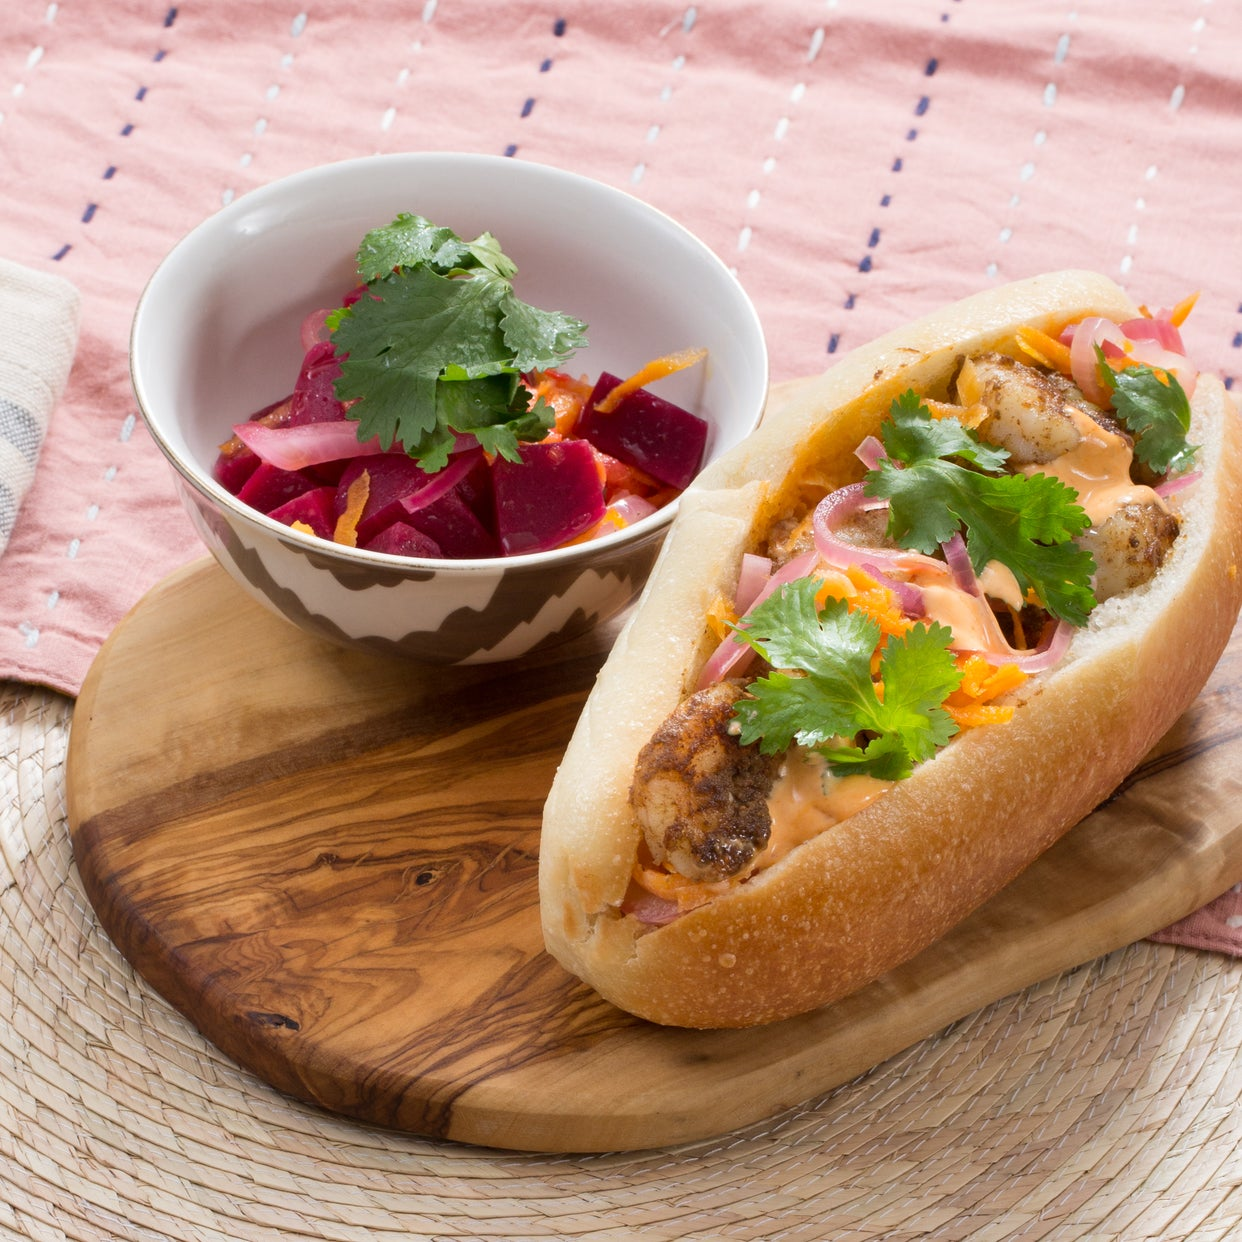 Shrimp Bánh Mì with Pickled Vegetables & Beet Salad